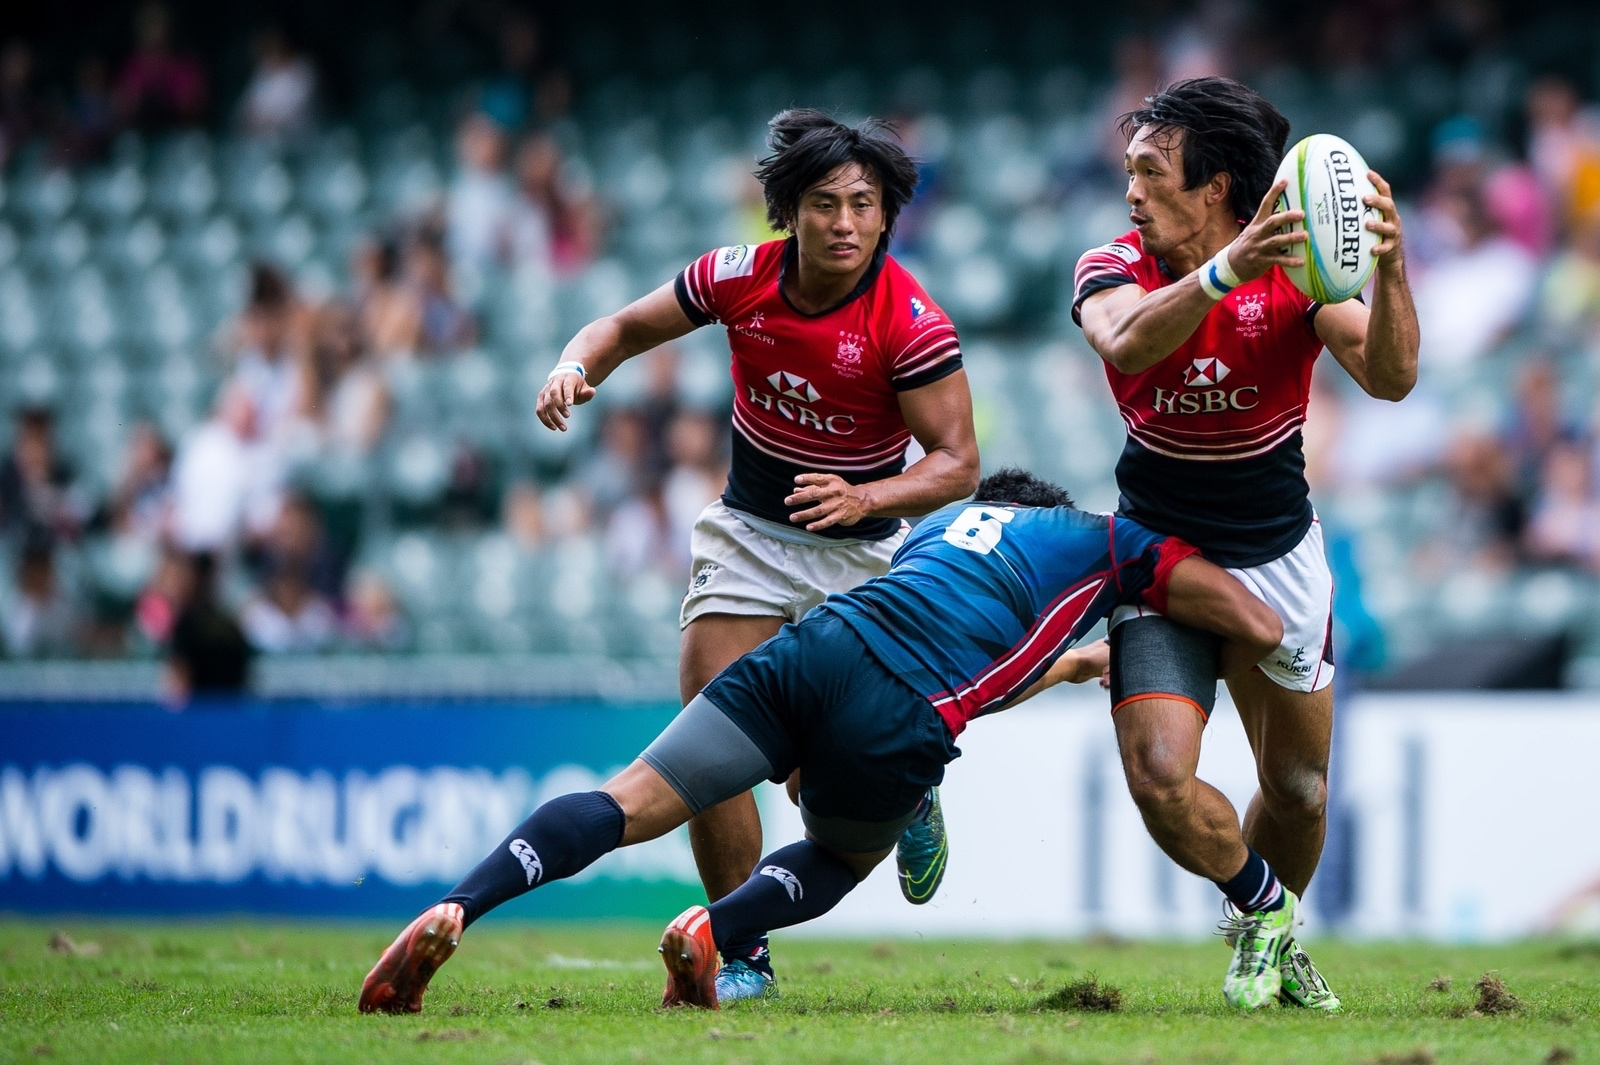 Hong Kong Men's seven announced for Olympic Repechage